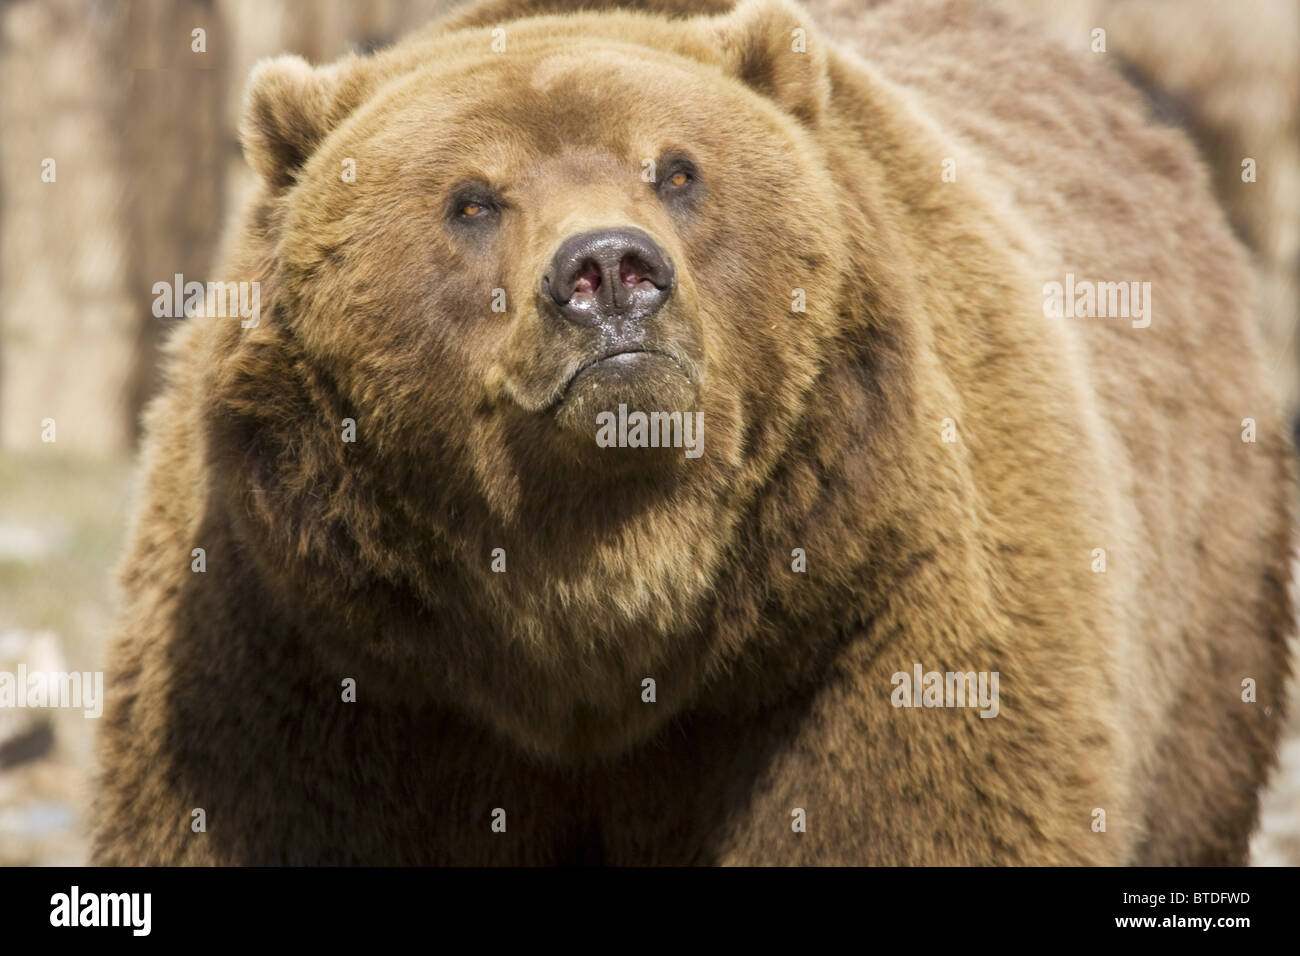 CAPTIVE Grizzly at the Alaska Zoo - Stock Image